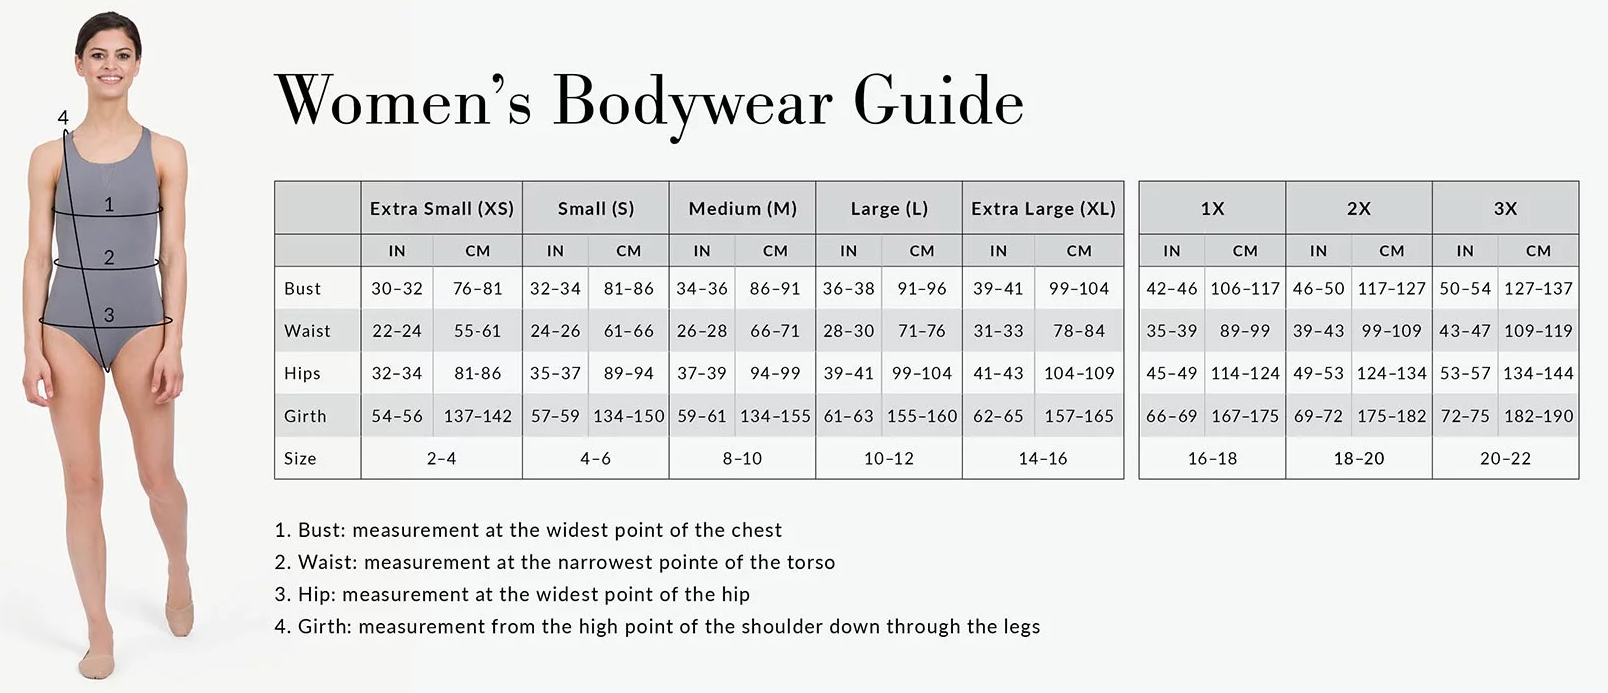 women-s-bodywear-guide.png